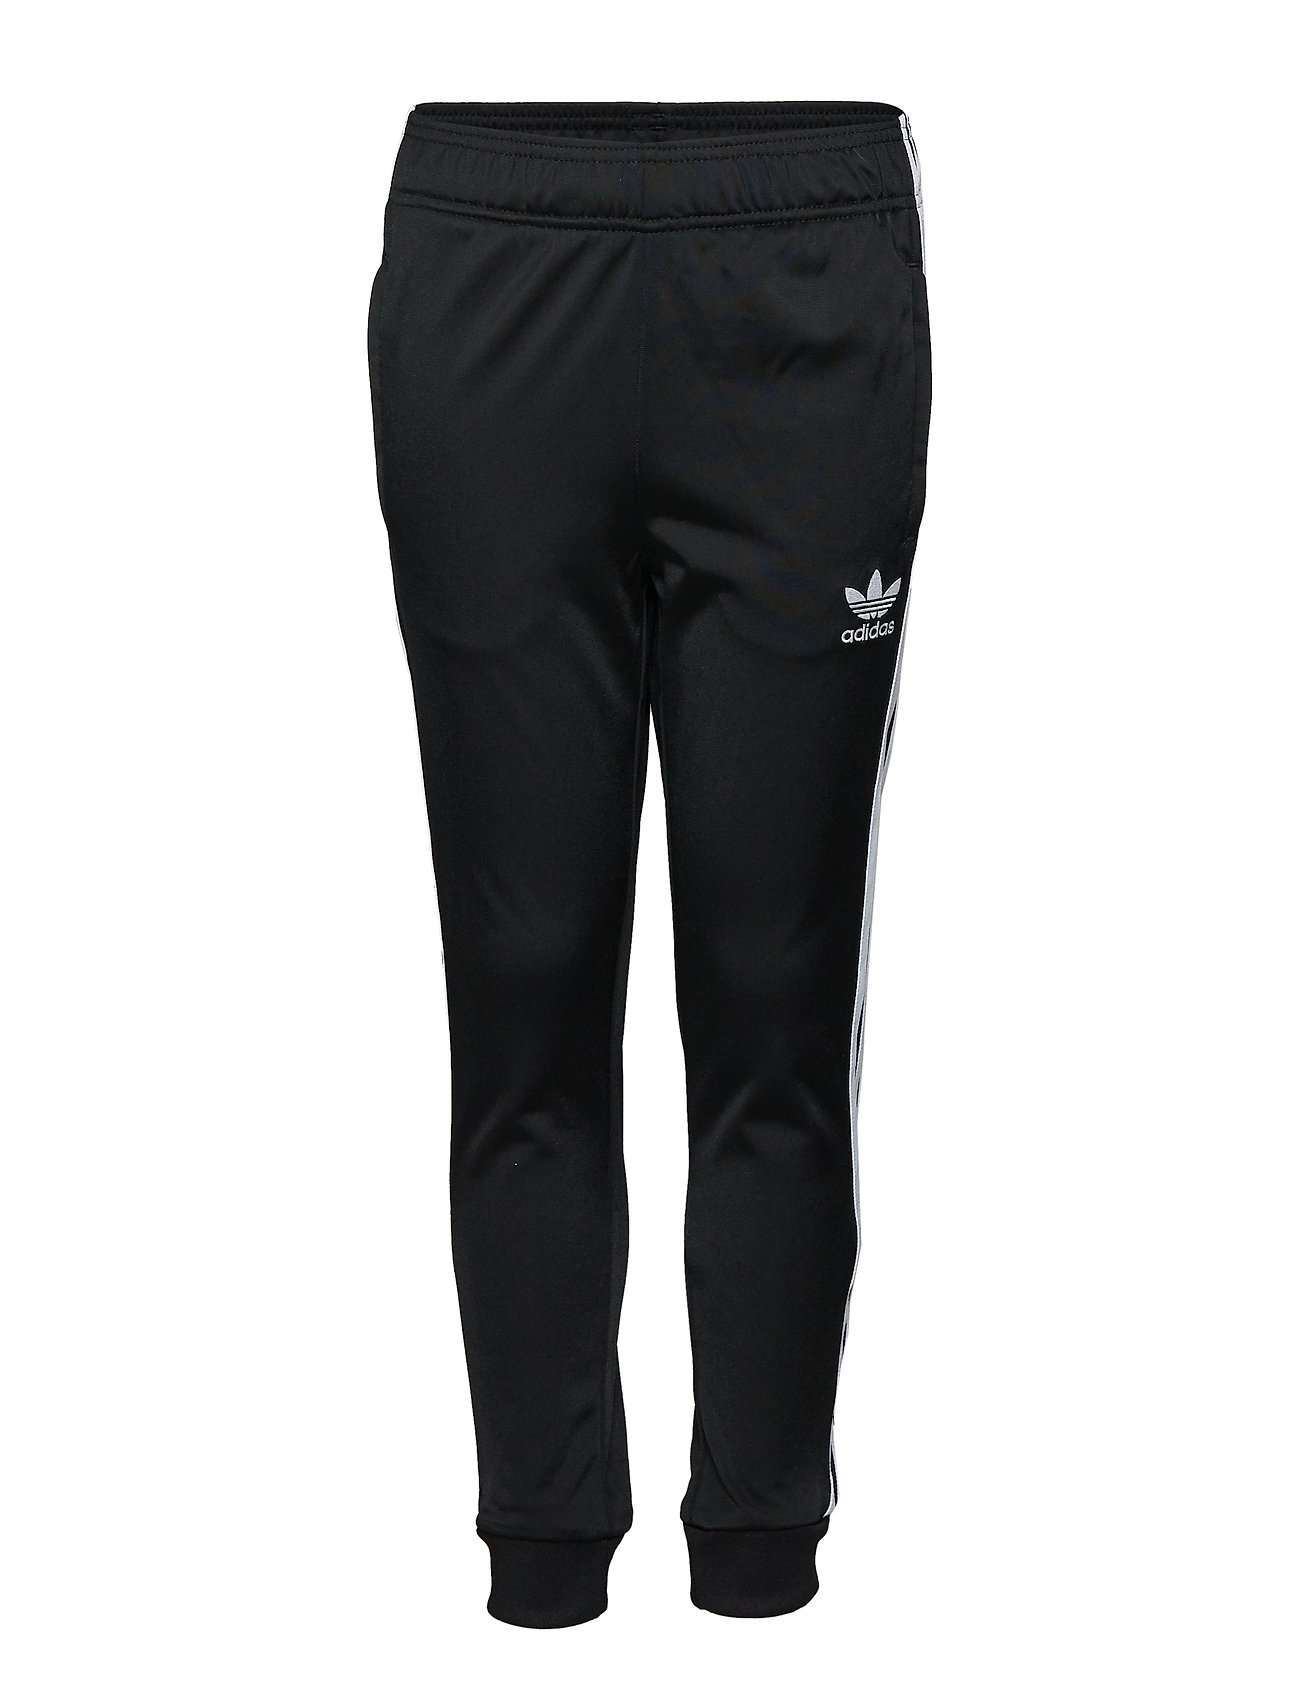 adidas Originals SUPERSTAR PANTS - BLACK/WHITE